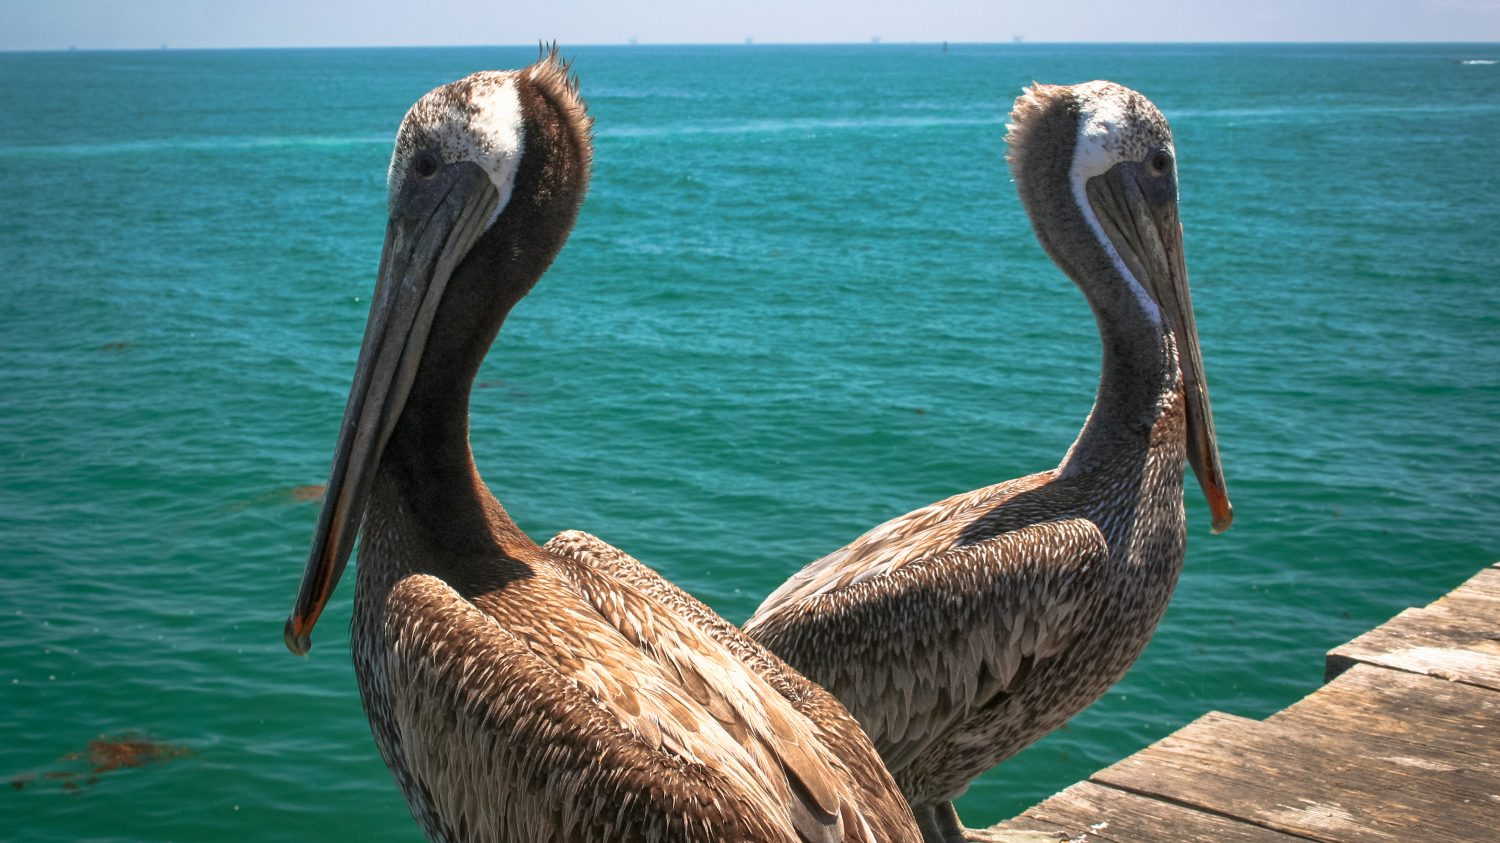 Pair of Pelicans on Stearns Wharf, Santa Barbara, CA